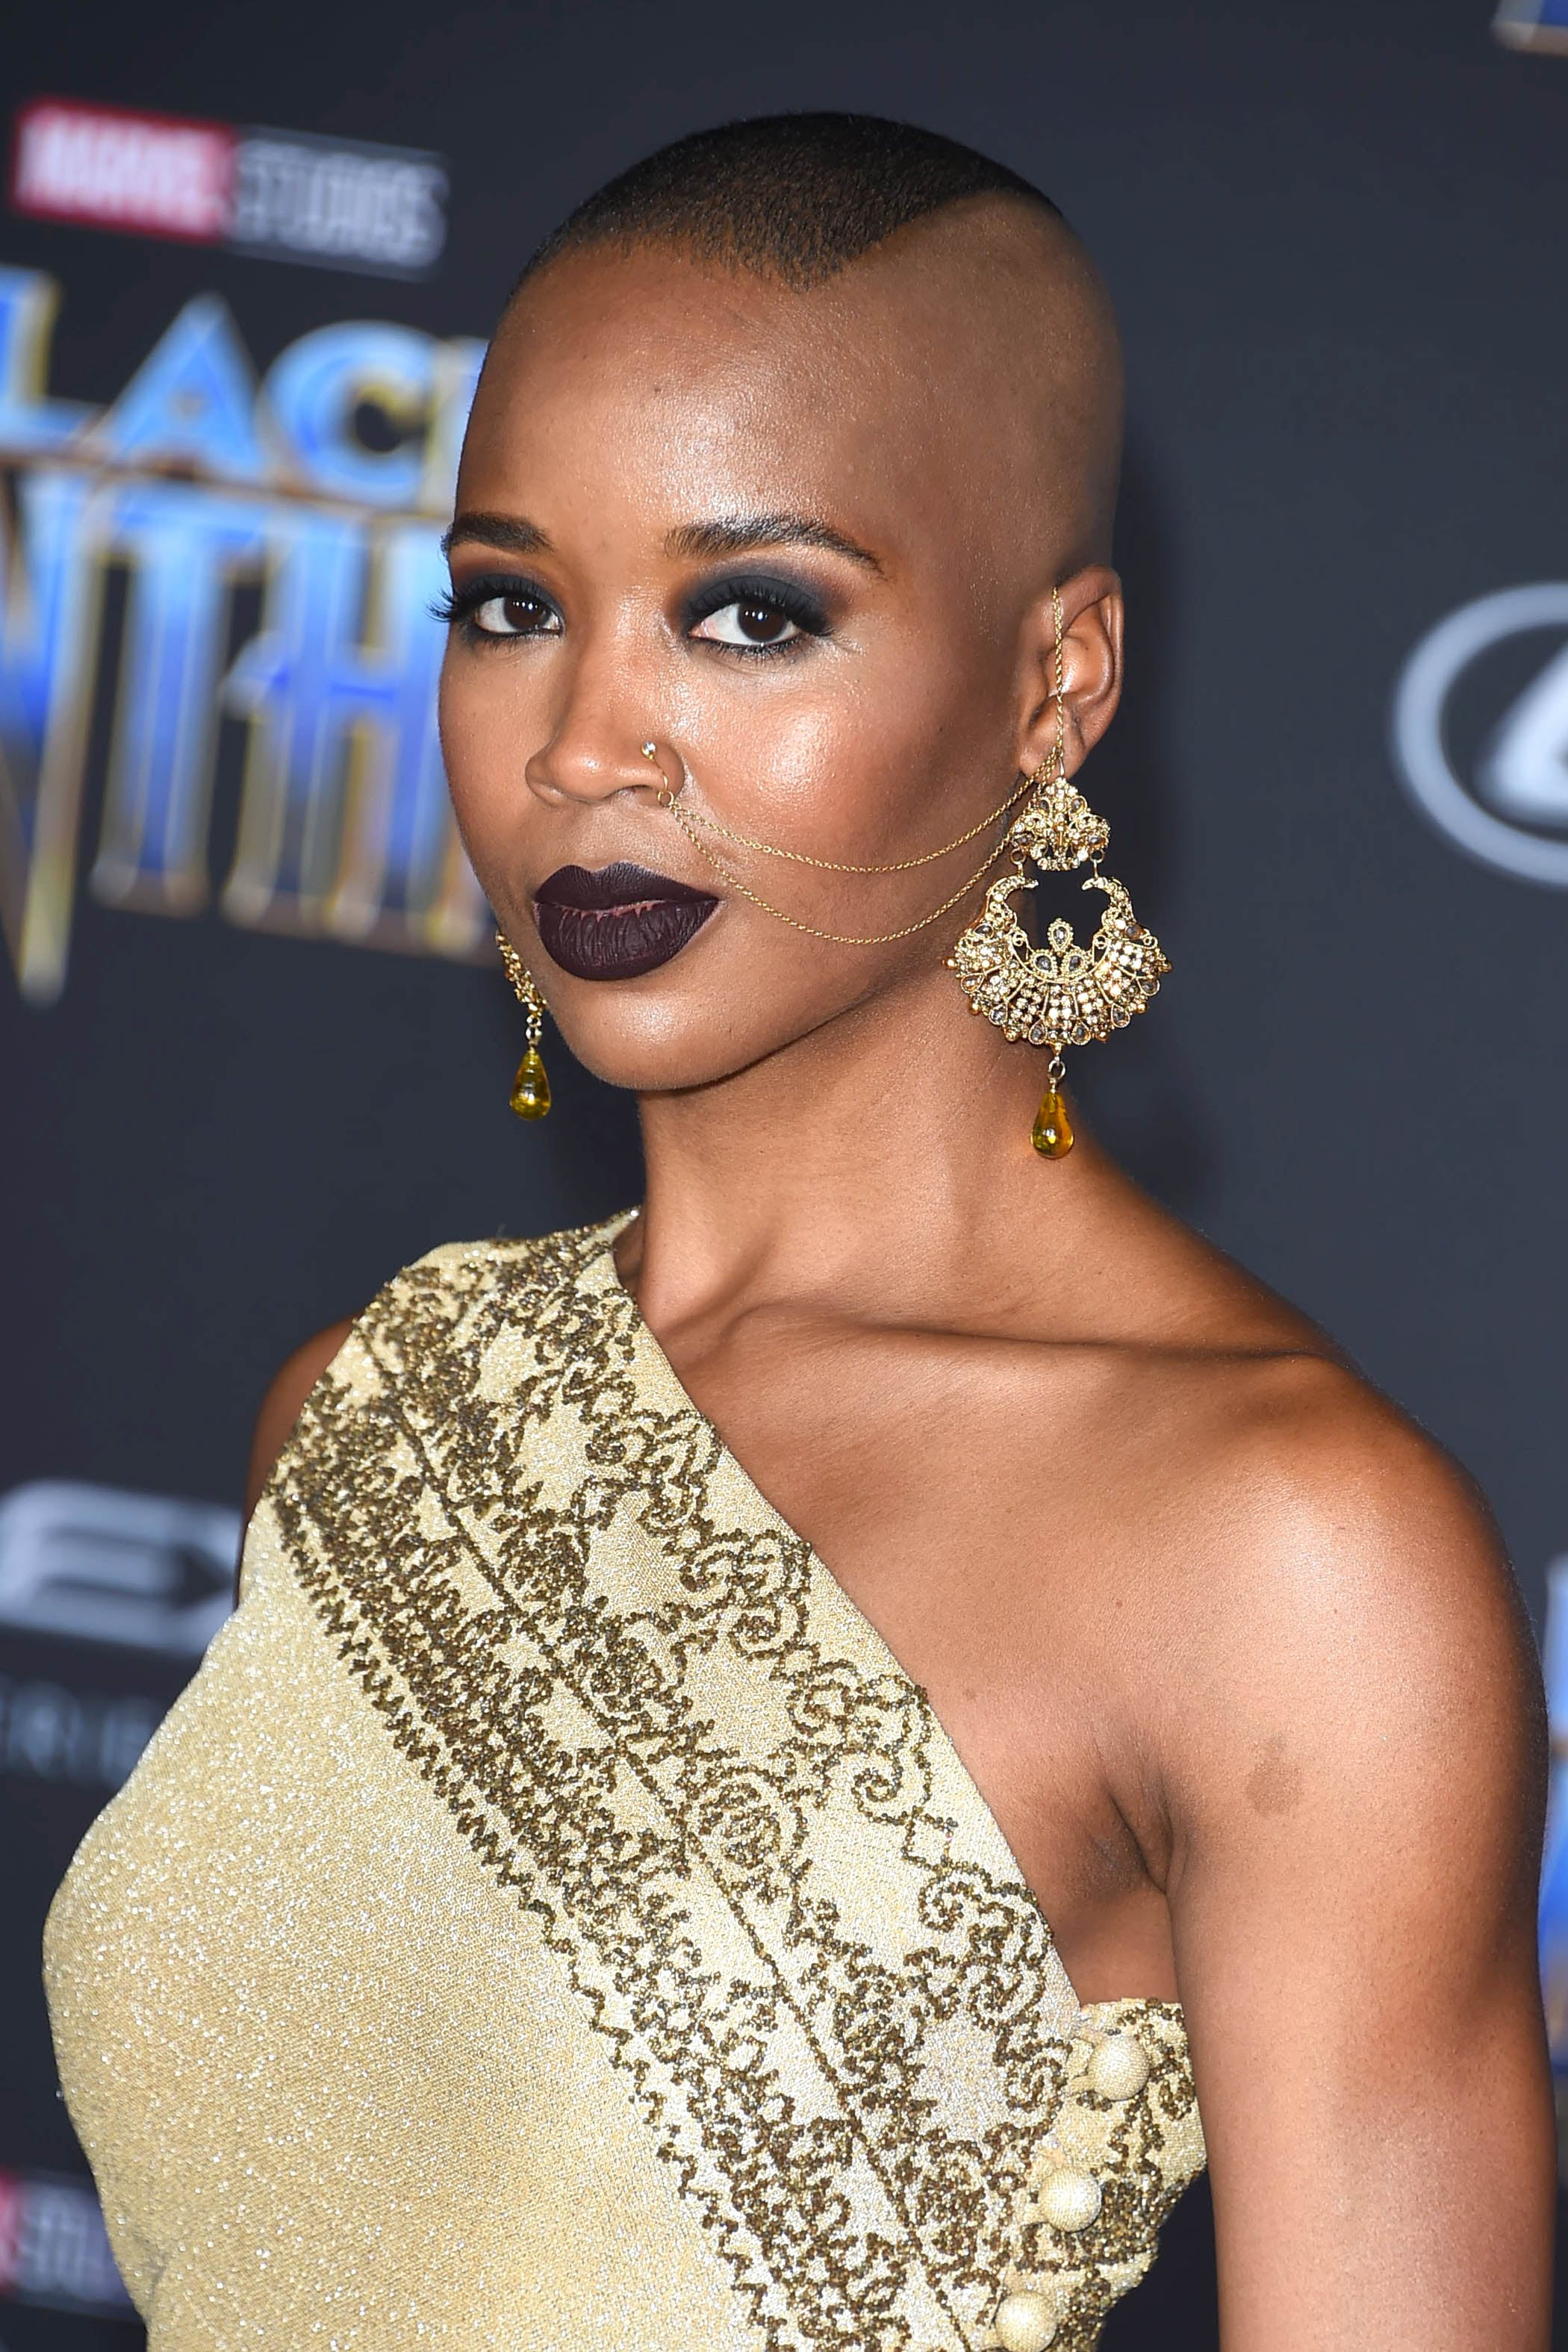 black panther star marija abney with a shaved buzz cut hairstyle with mohawk detail on the red carpet at the black panther premiere